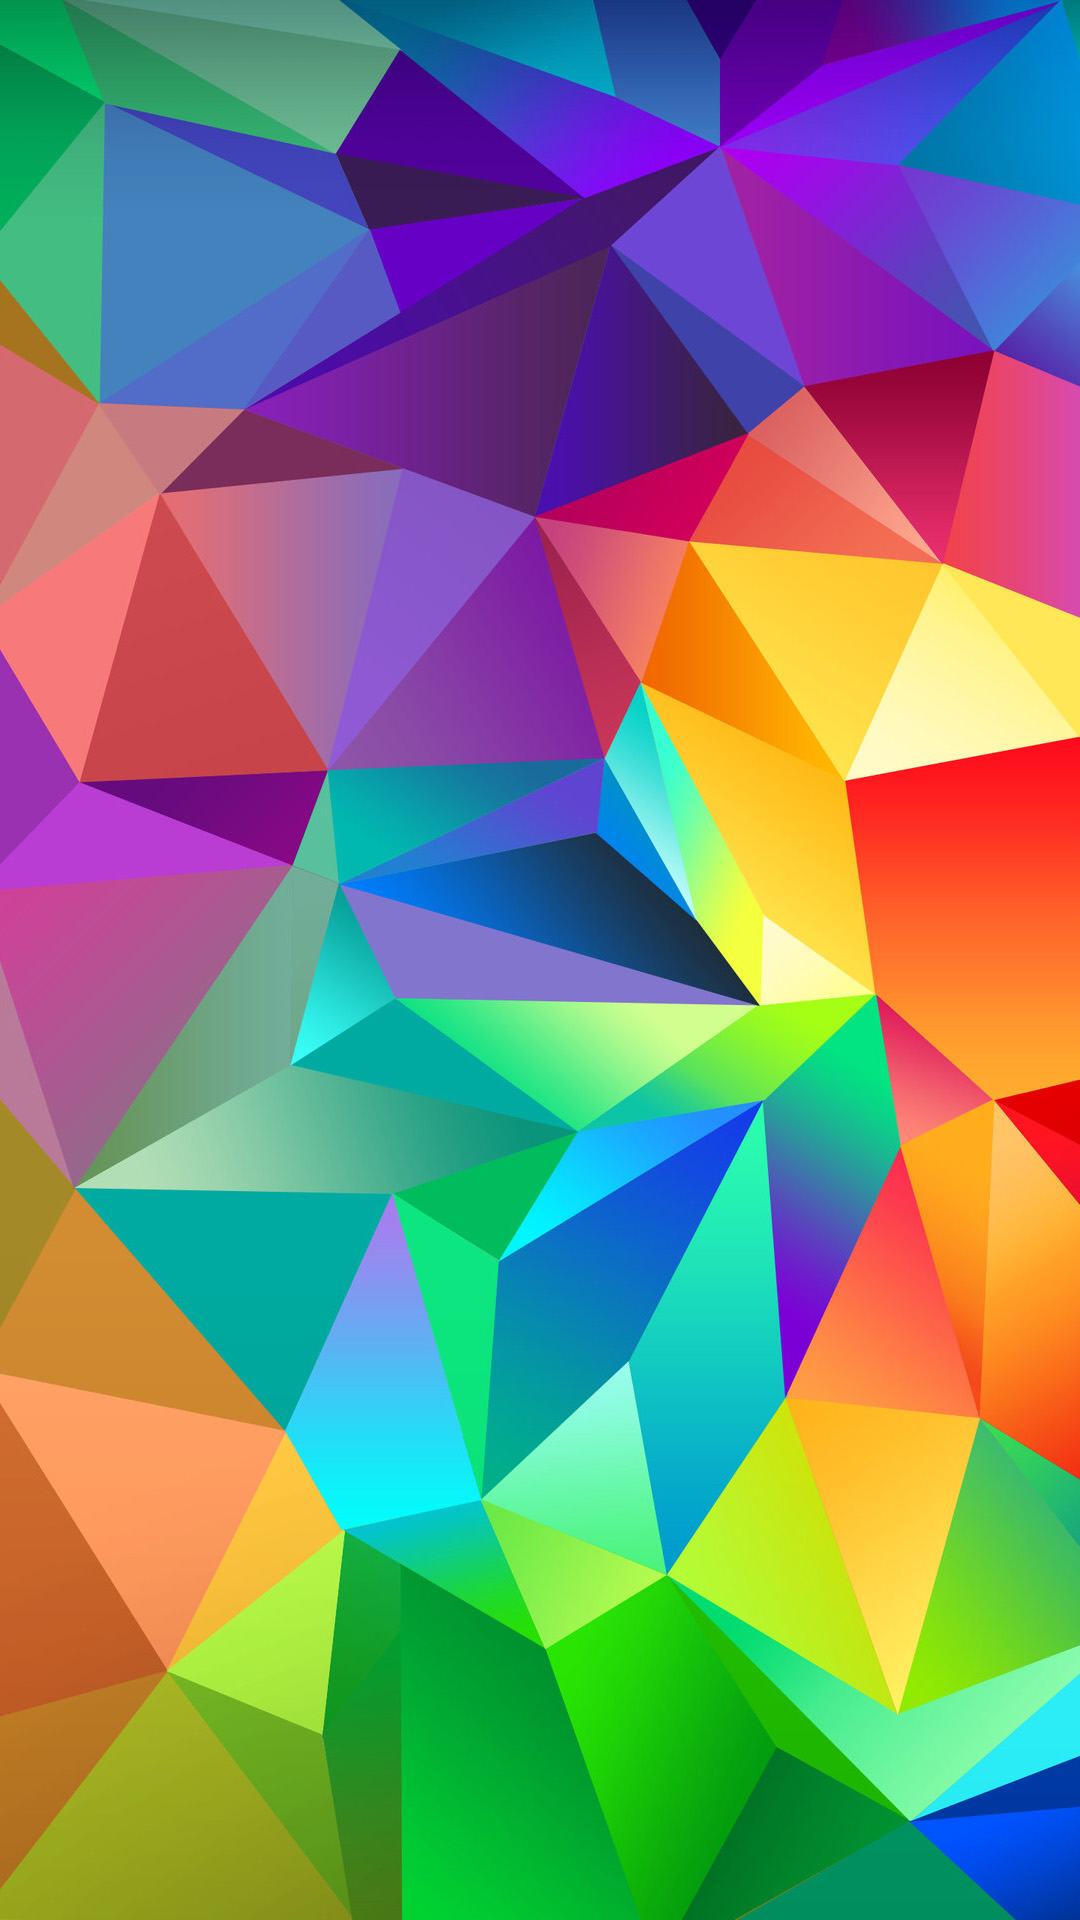 3d Image Live Wallpaper Android App Download Abstract Colorful Wallpaper Gallery